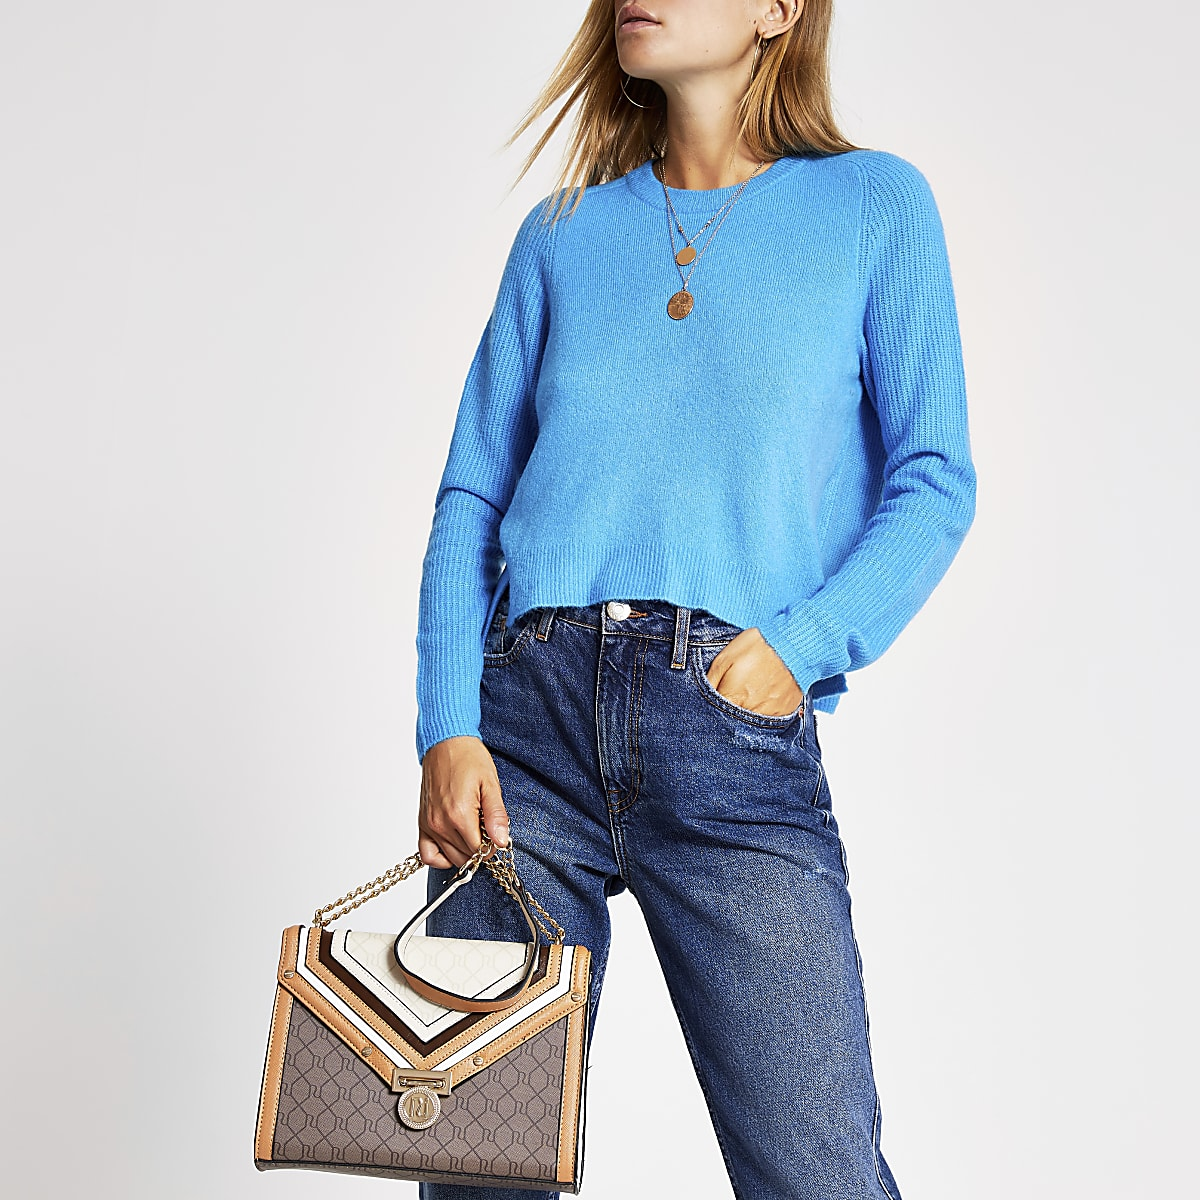 Blue long sleeve knitted jumper